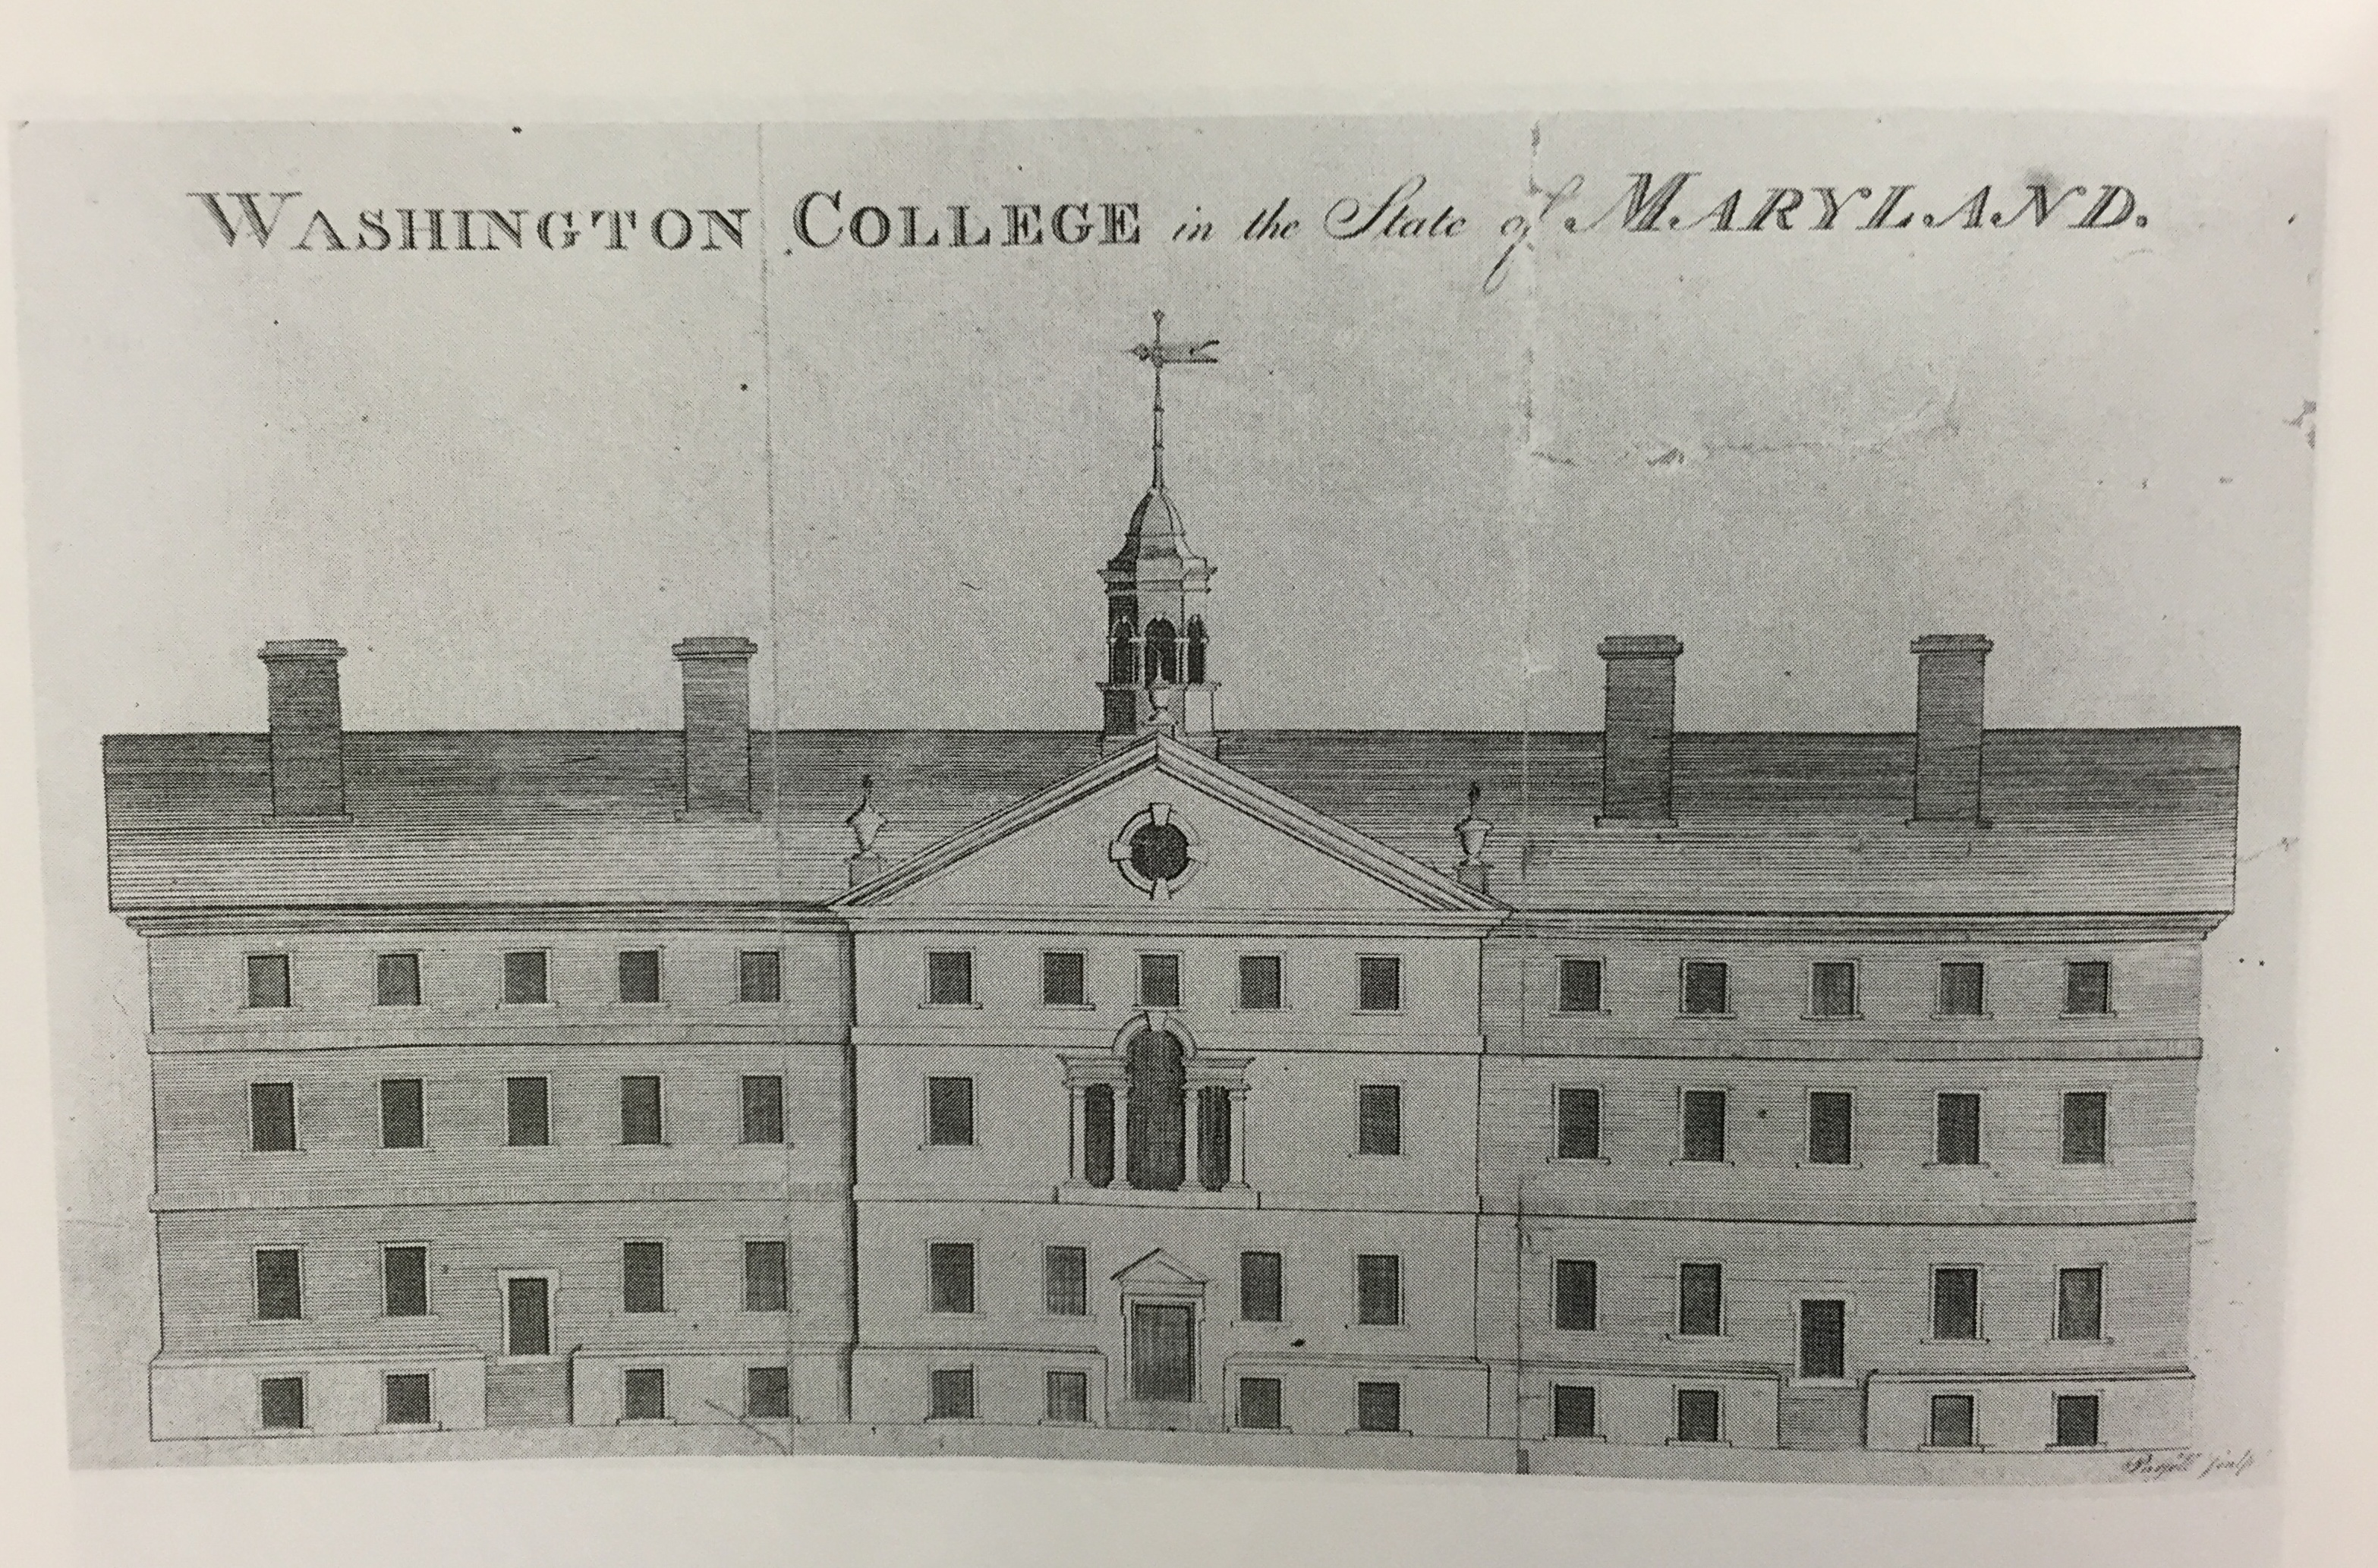 Original College Building 1782